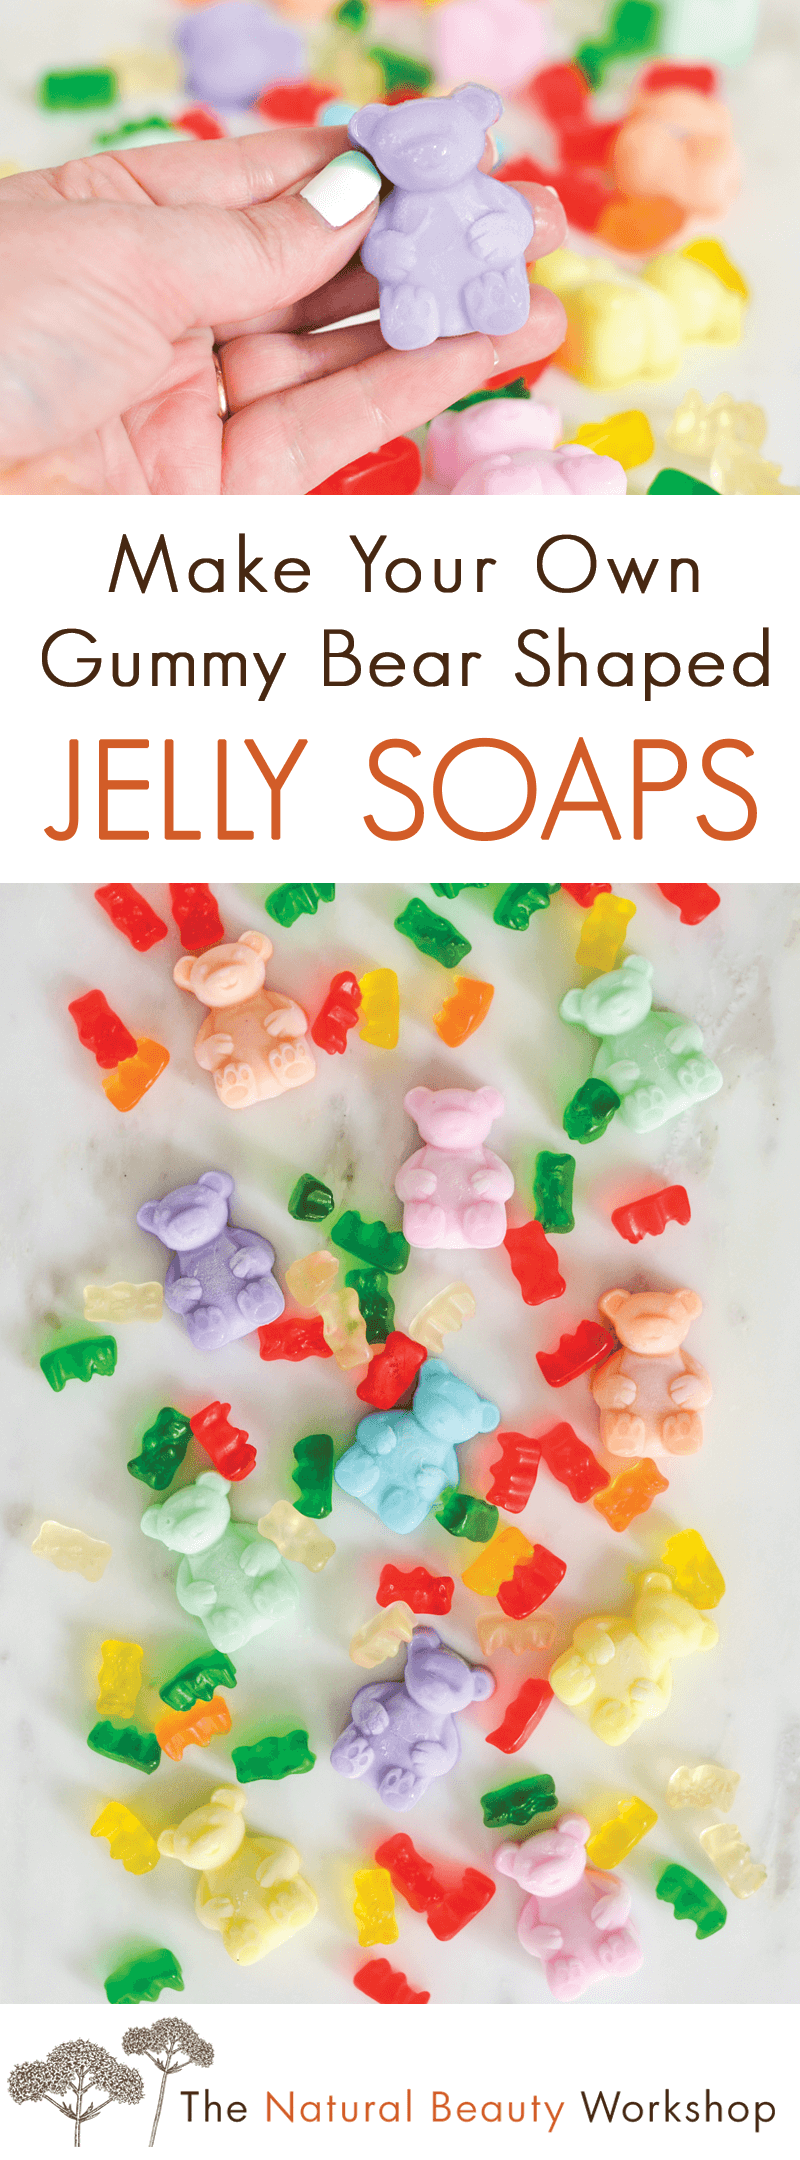 Make Your Own DIY Rainbow Jelly Soaps Shaped Like Gummy Bears_